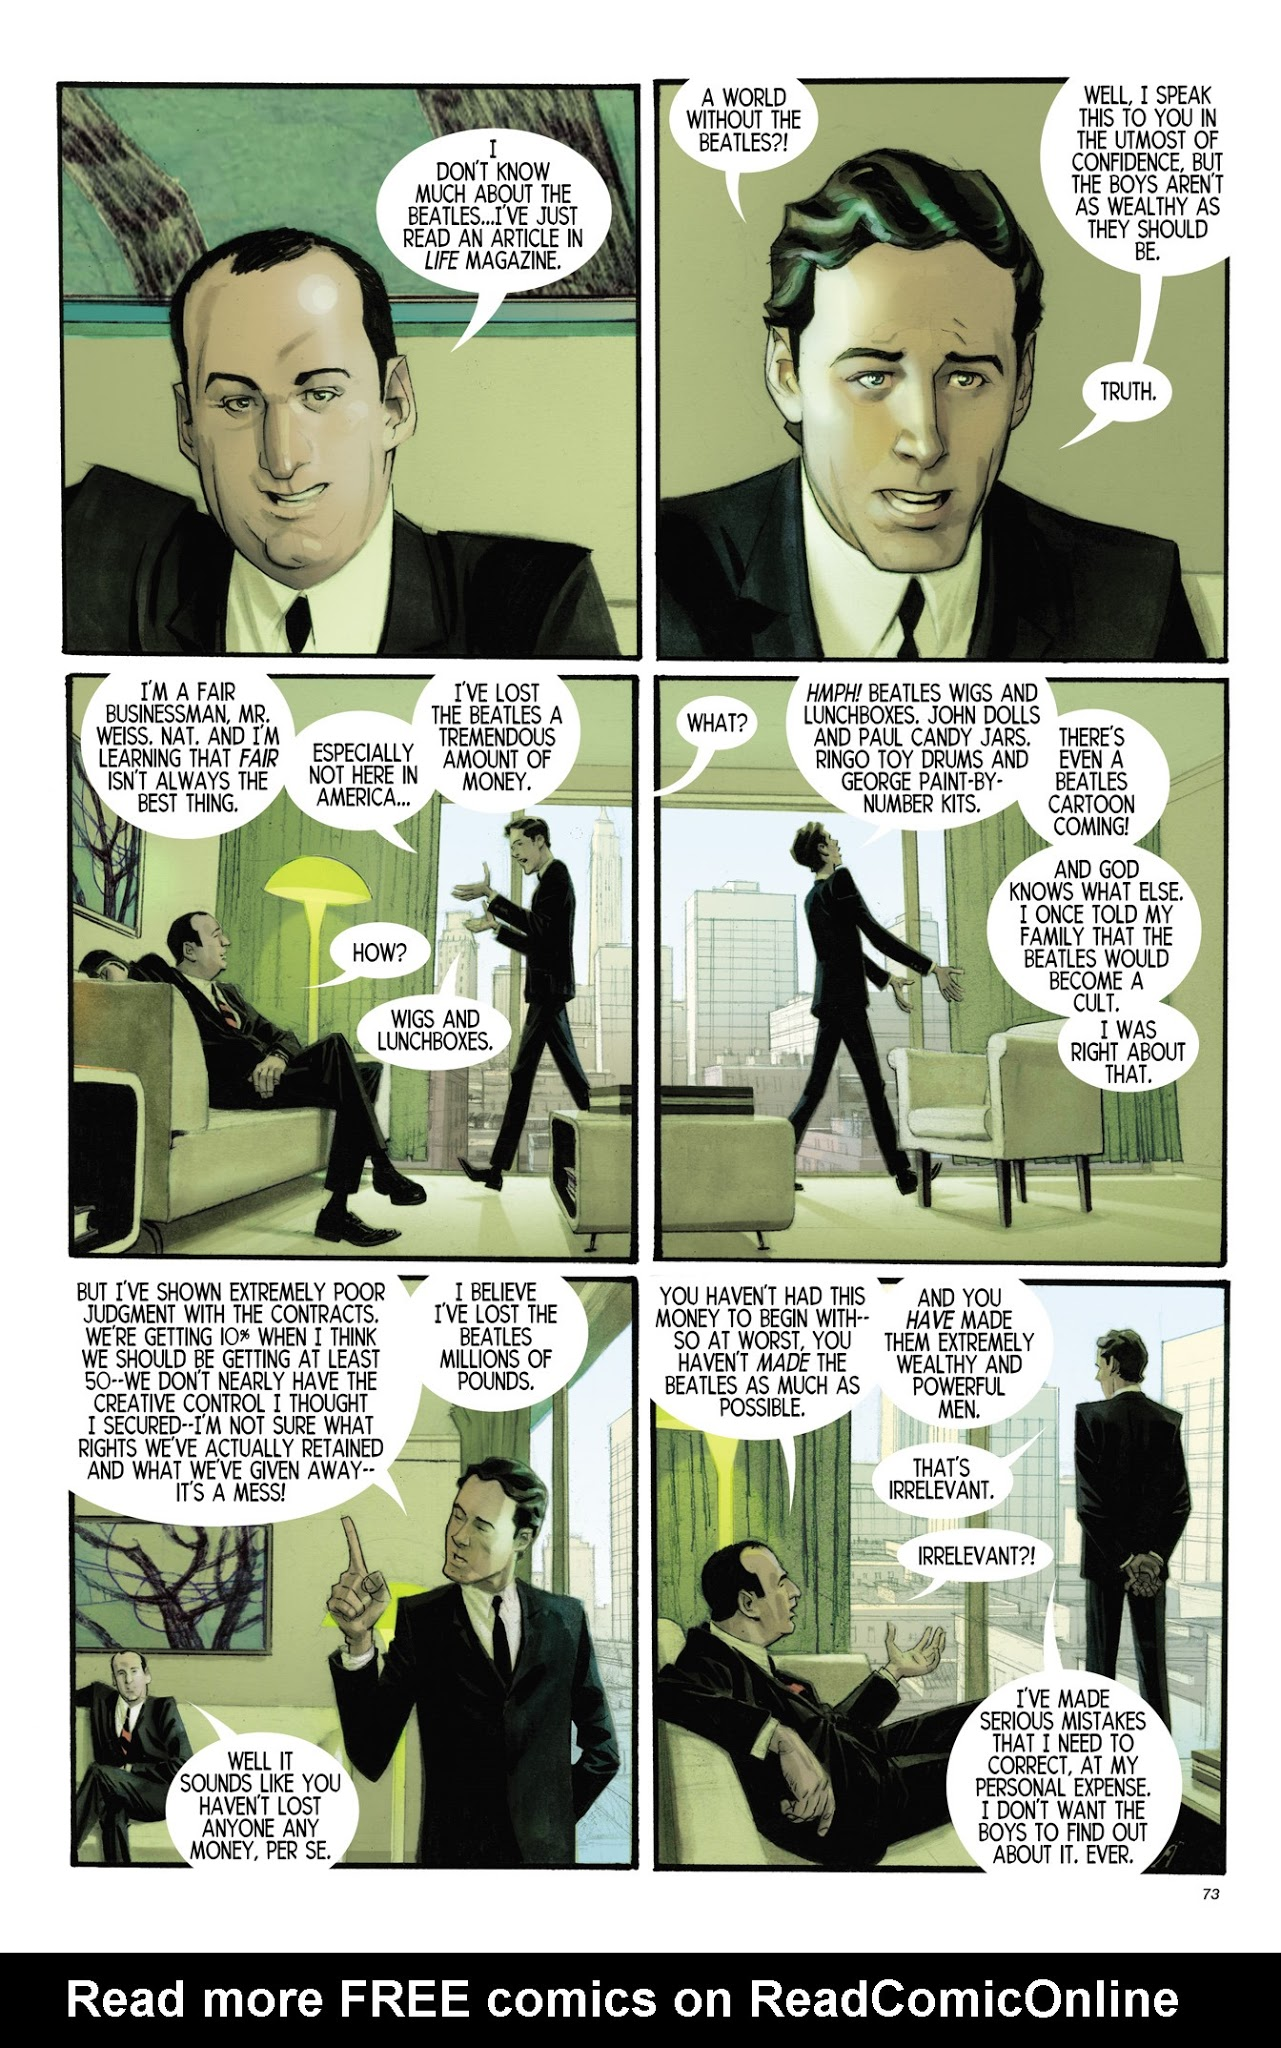 The Fifth Beatle: The Brian Epstein Story chap tpb pic 67